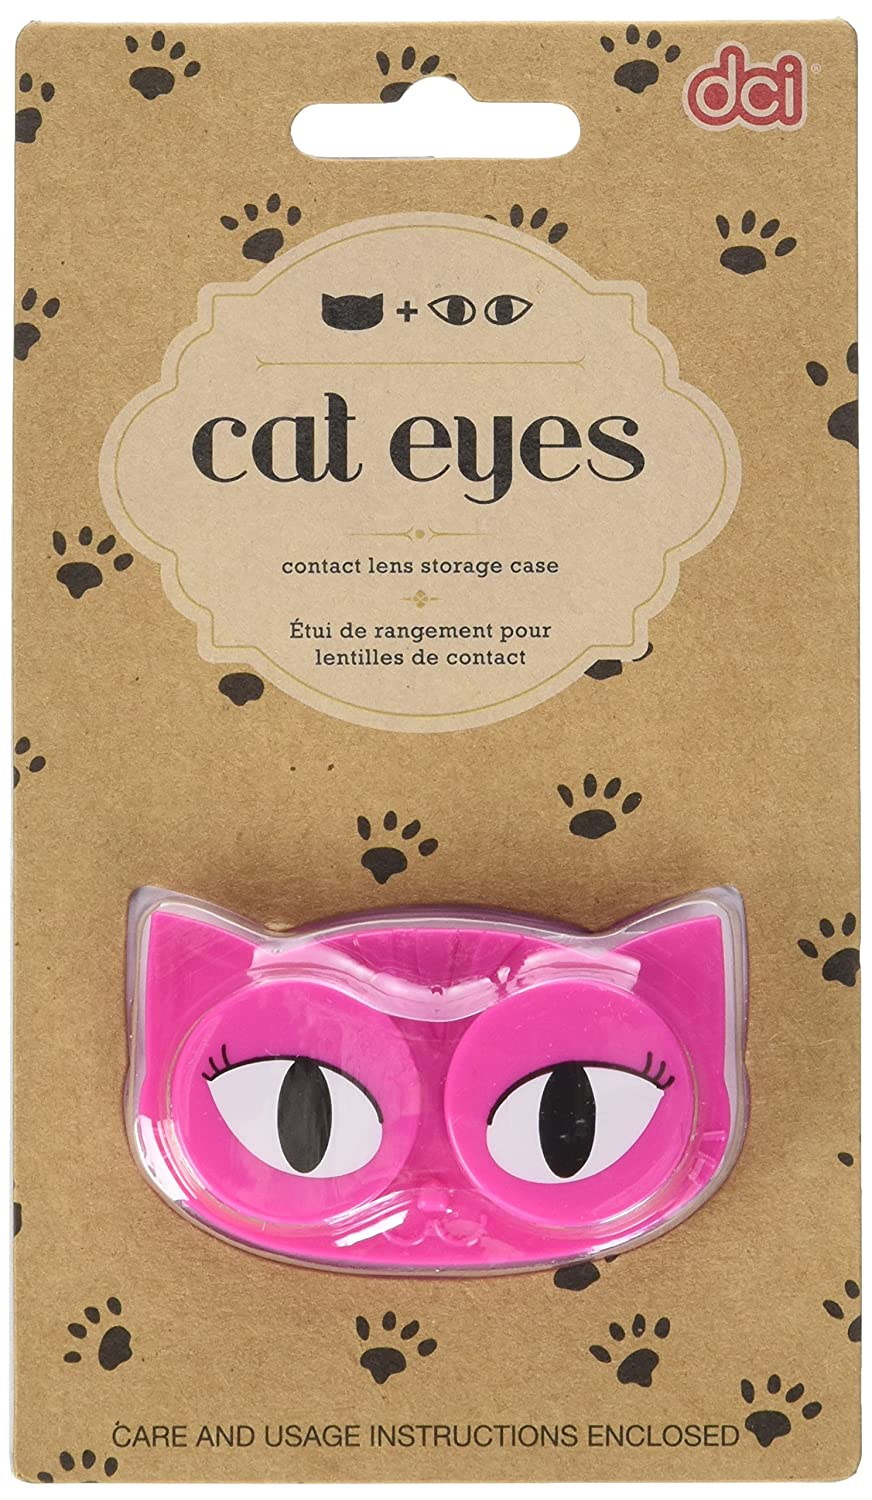 DCI Cat Eyes Contact Lens Case - Travel Mini Contact Lens Case Holder - Eye Care You Will Love (color may vary) 49720